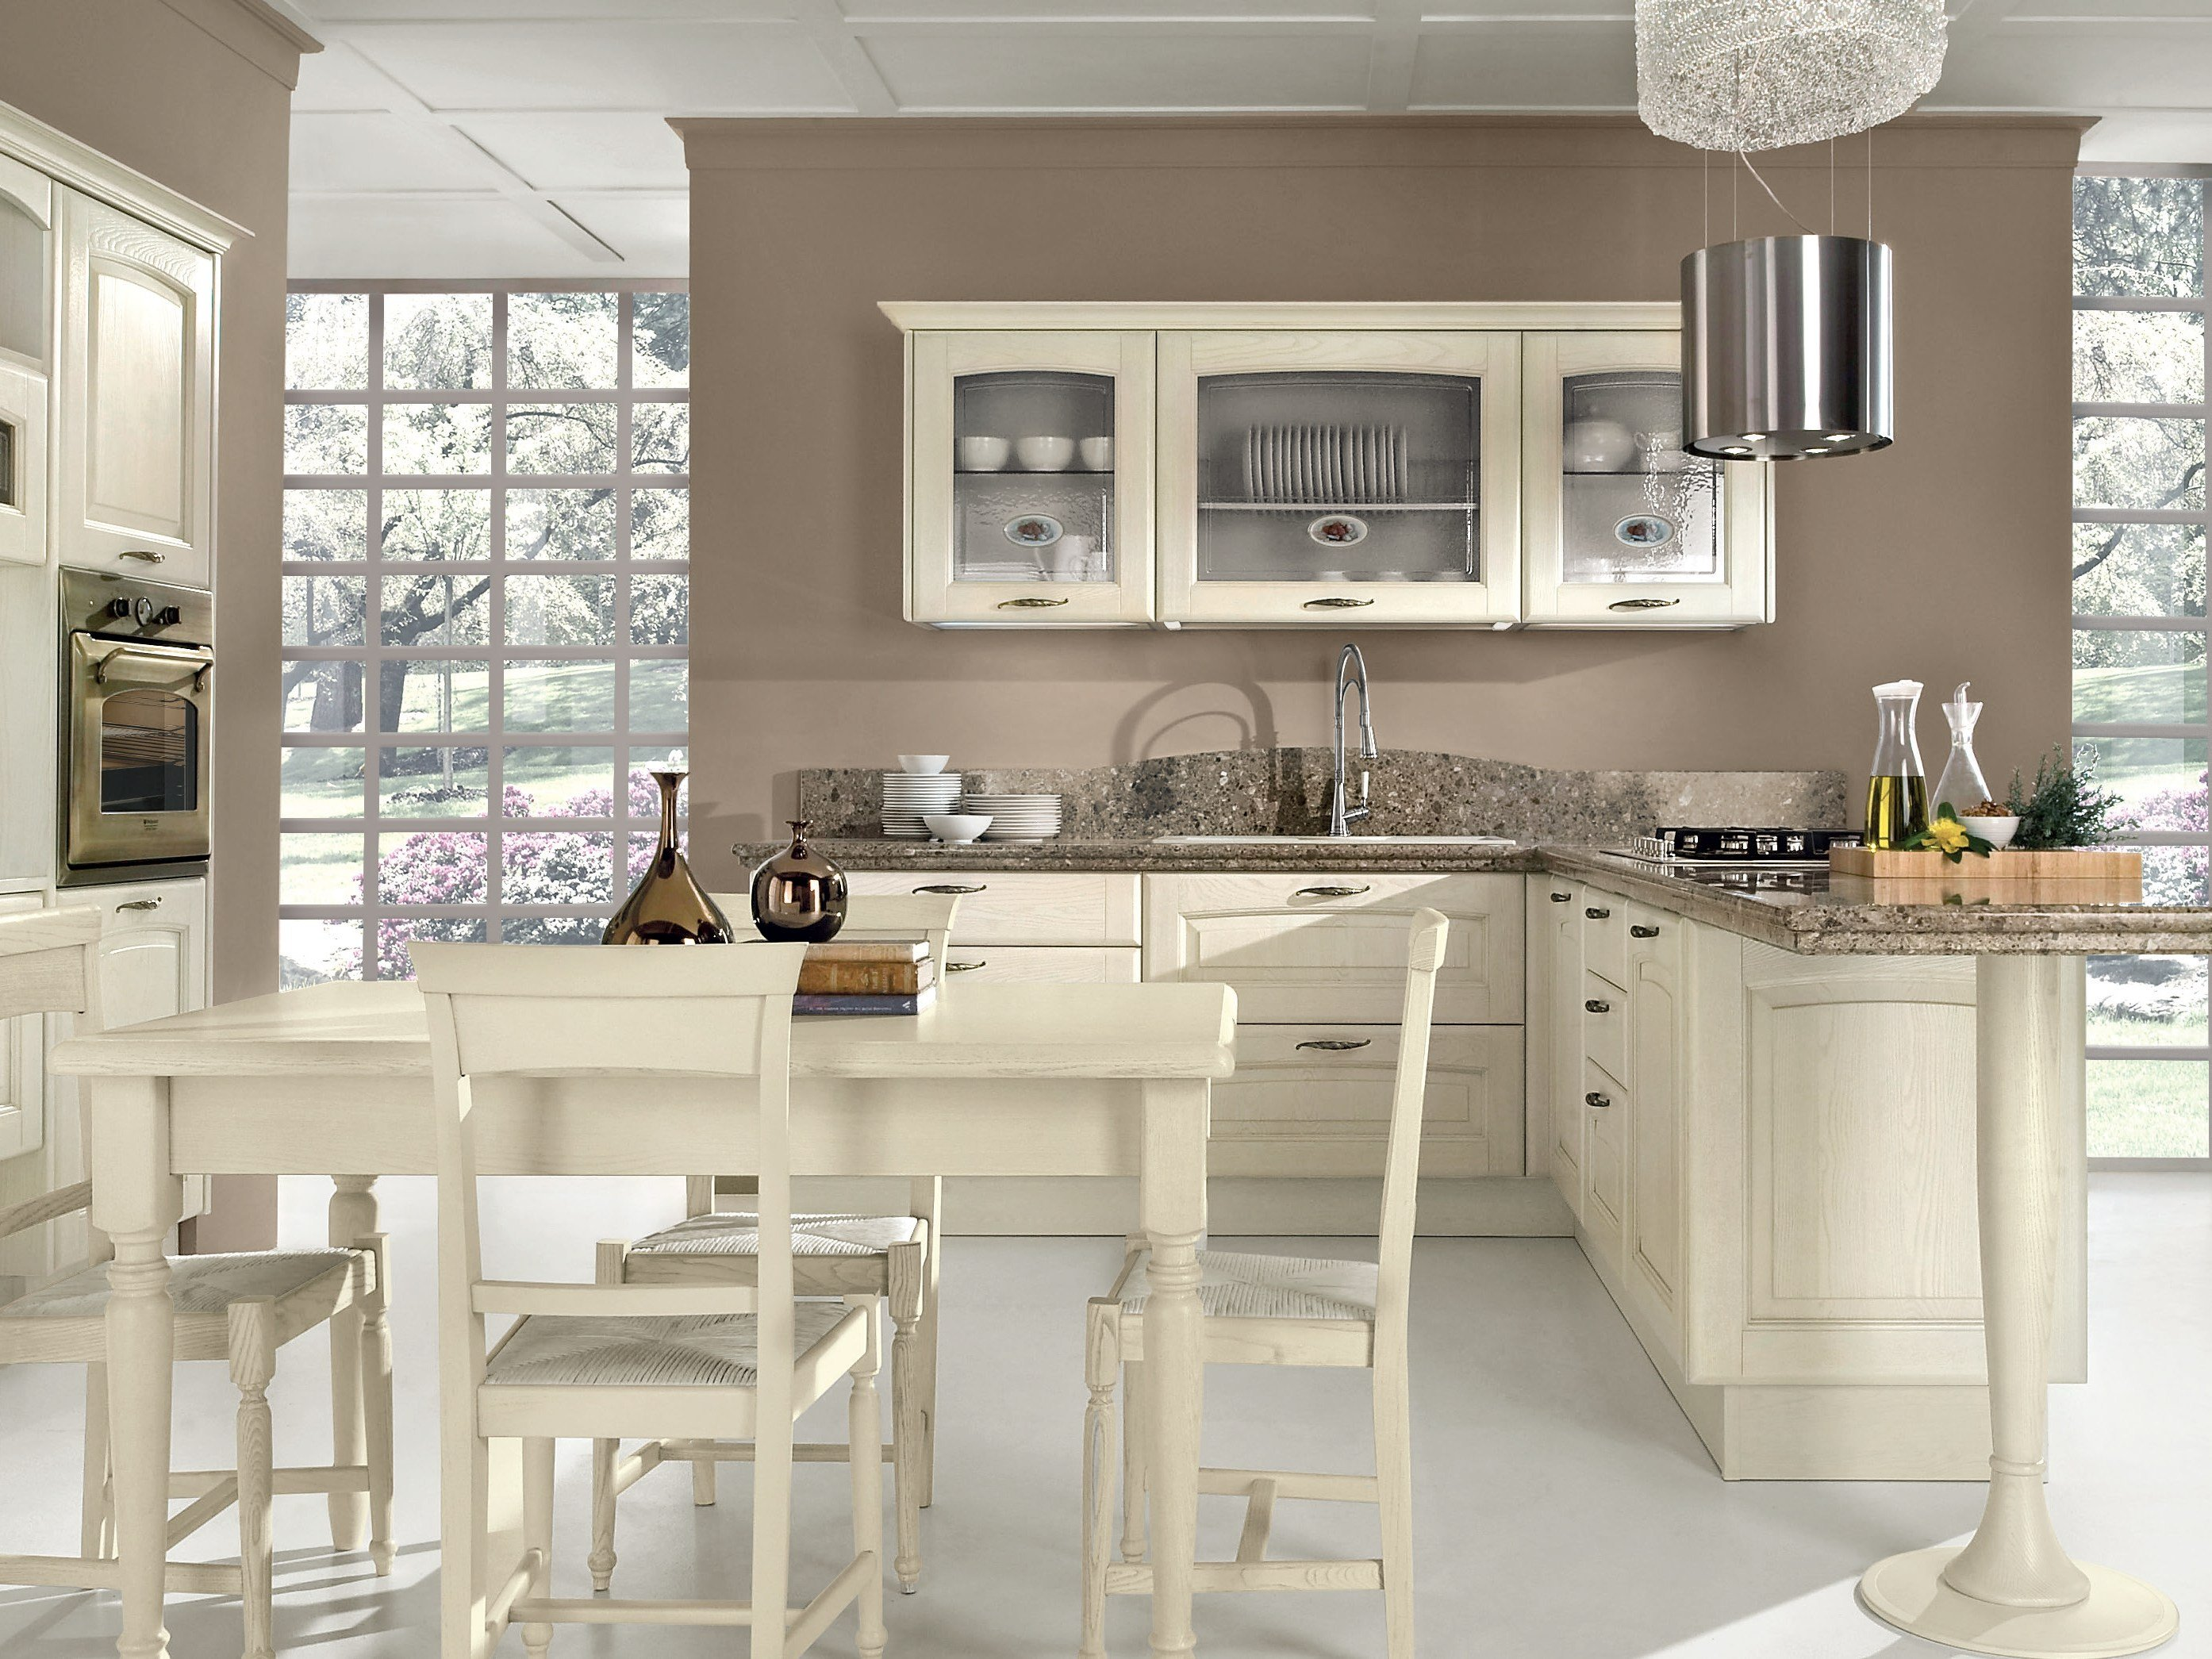 Veronica decap kitchen by cucine lube - Cucine shabby chic ...